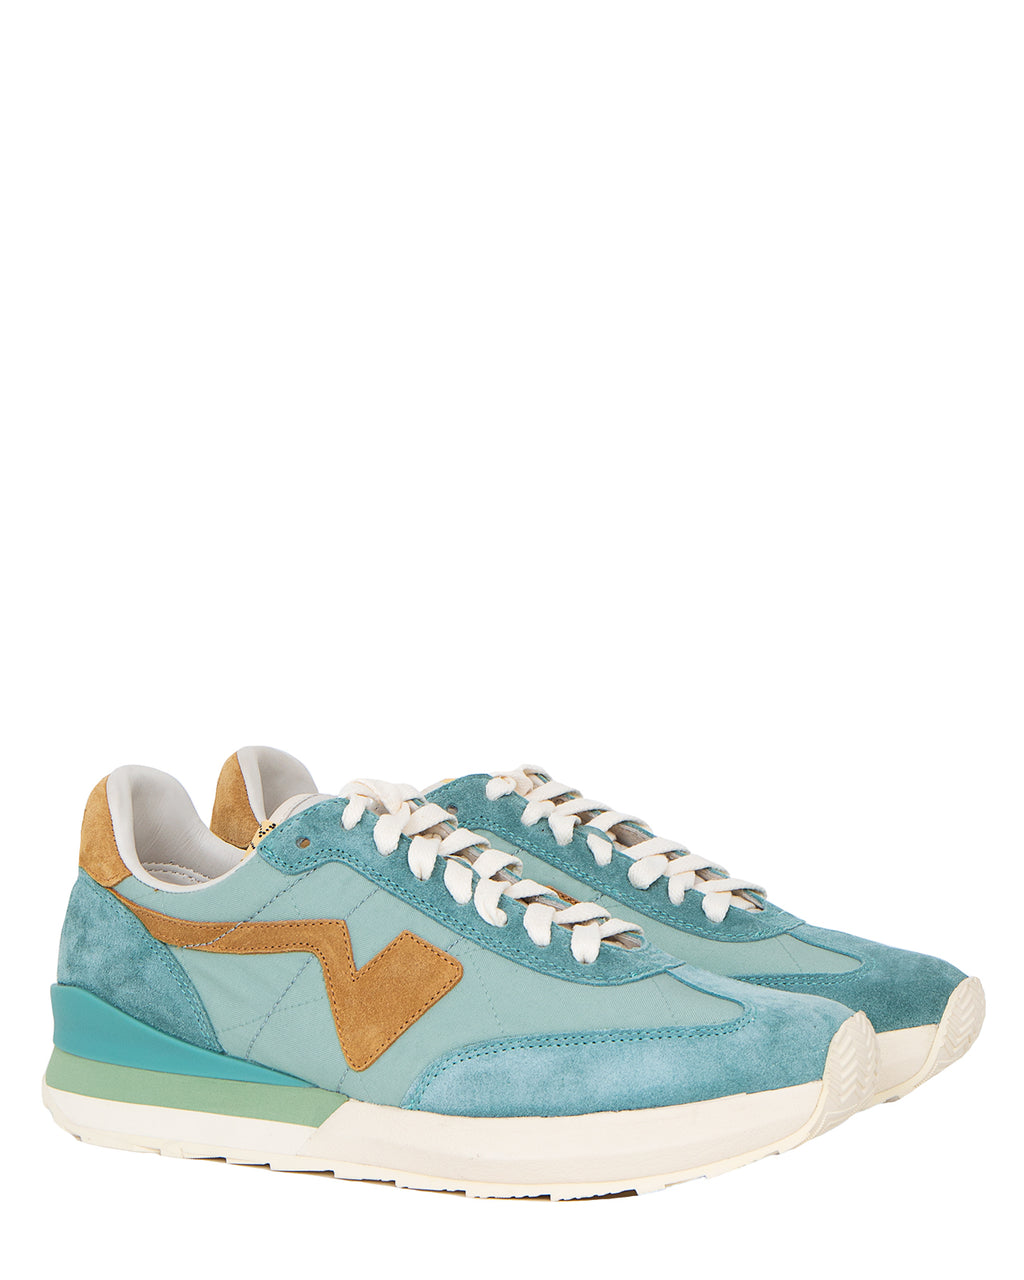 Visvim FKT Runner, Light Green